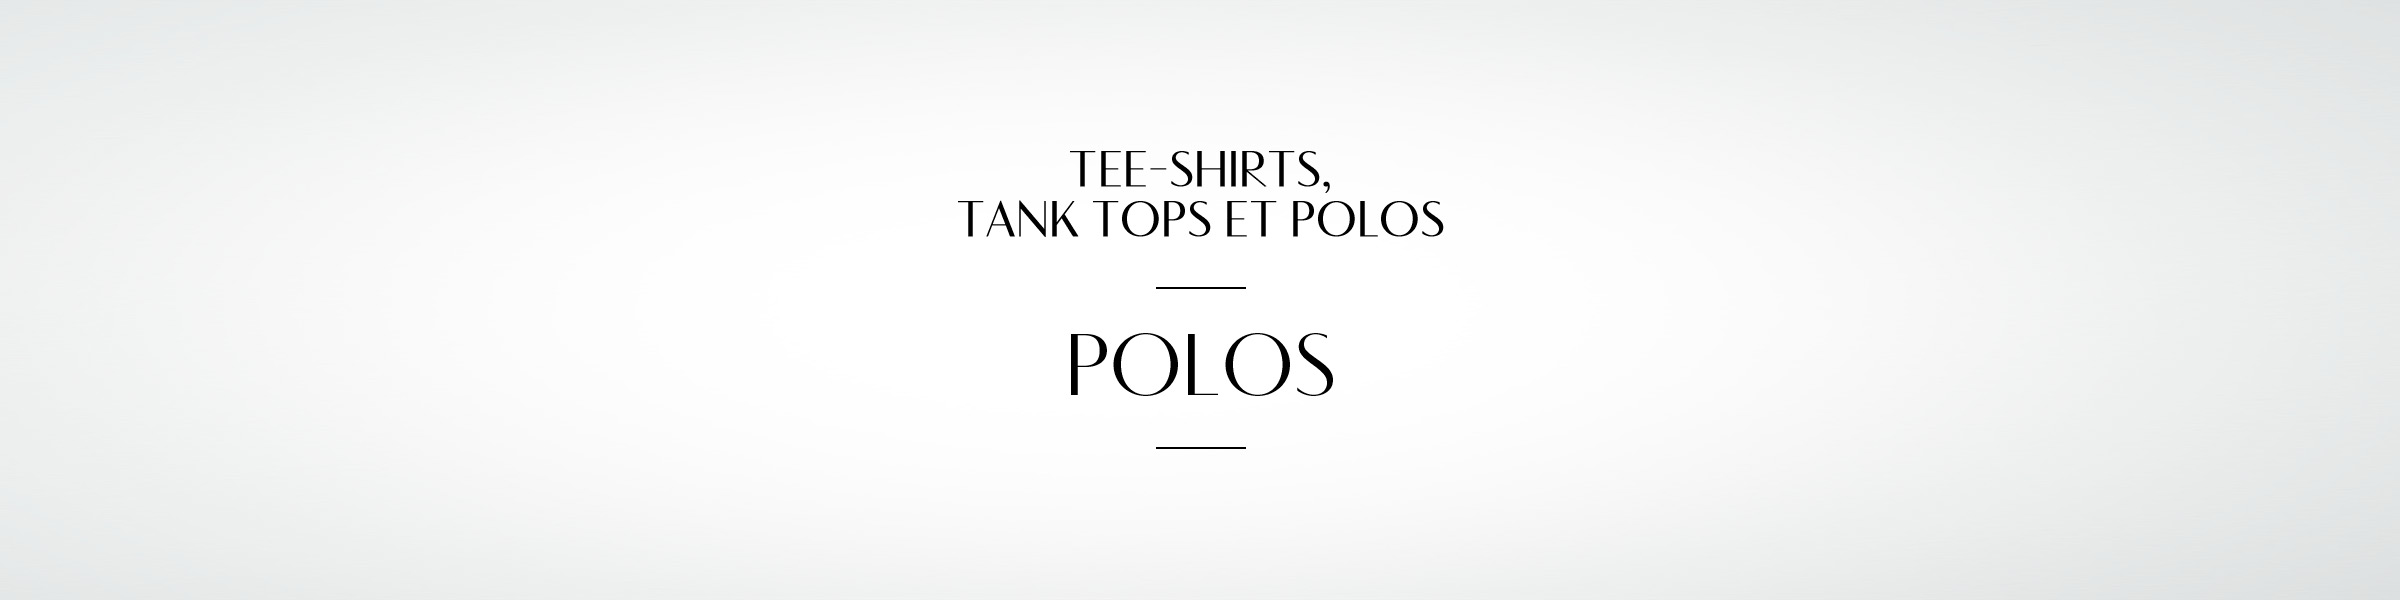 A17-TBGEN-HOMME_Tee-shirts, tank tops et polos_Polos.psd